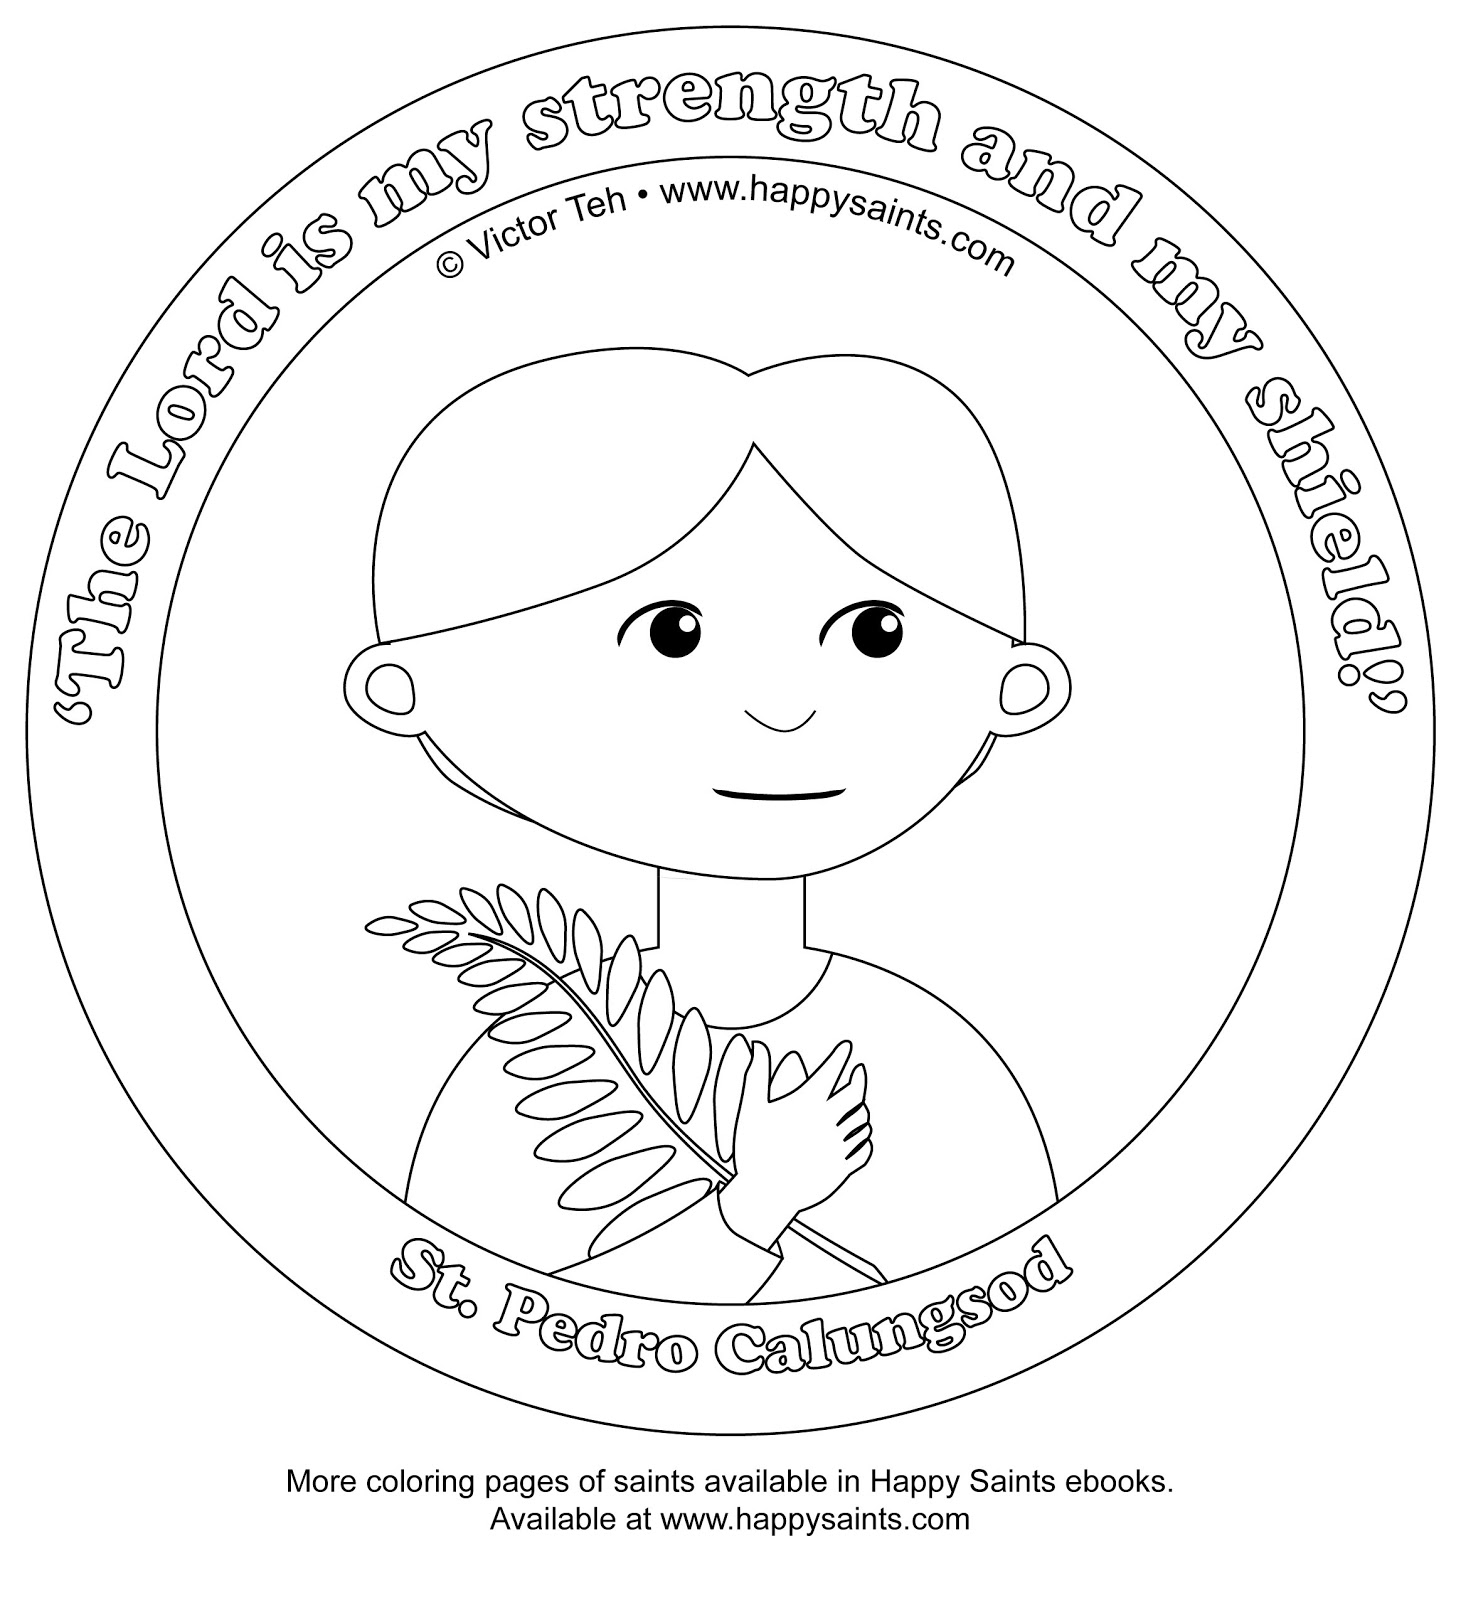 Happy Saints Coloring Pages | Coloring Pages